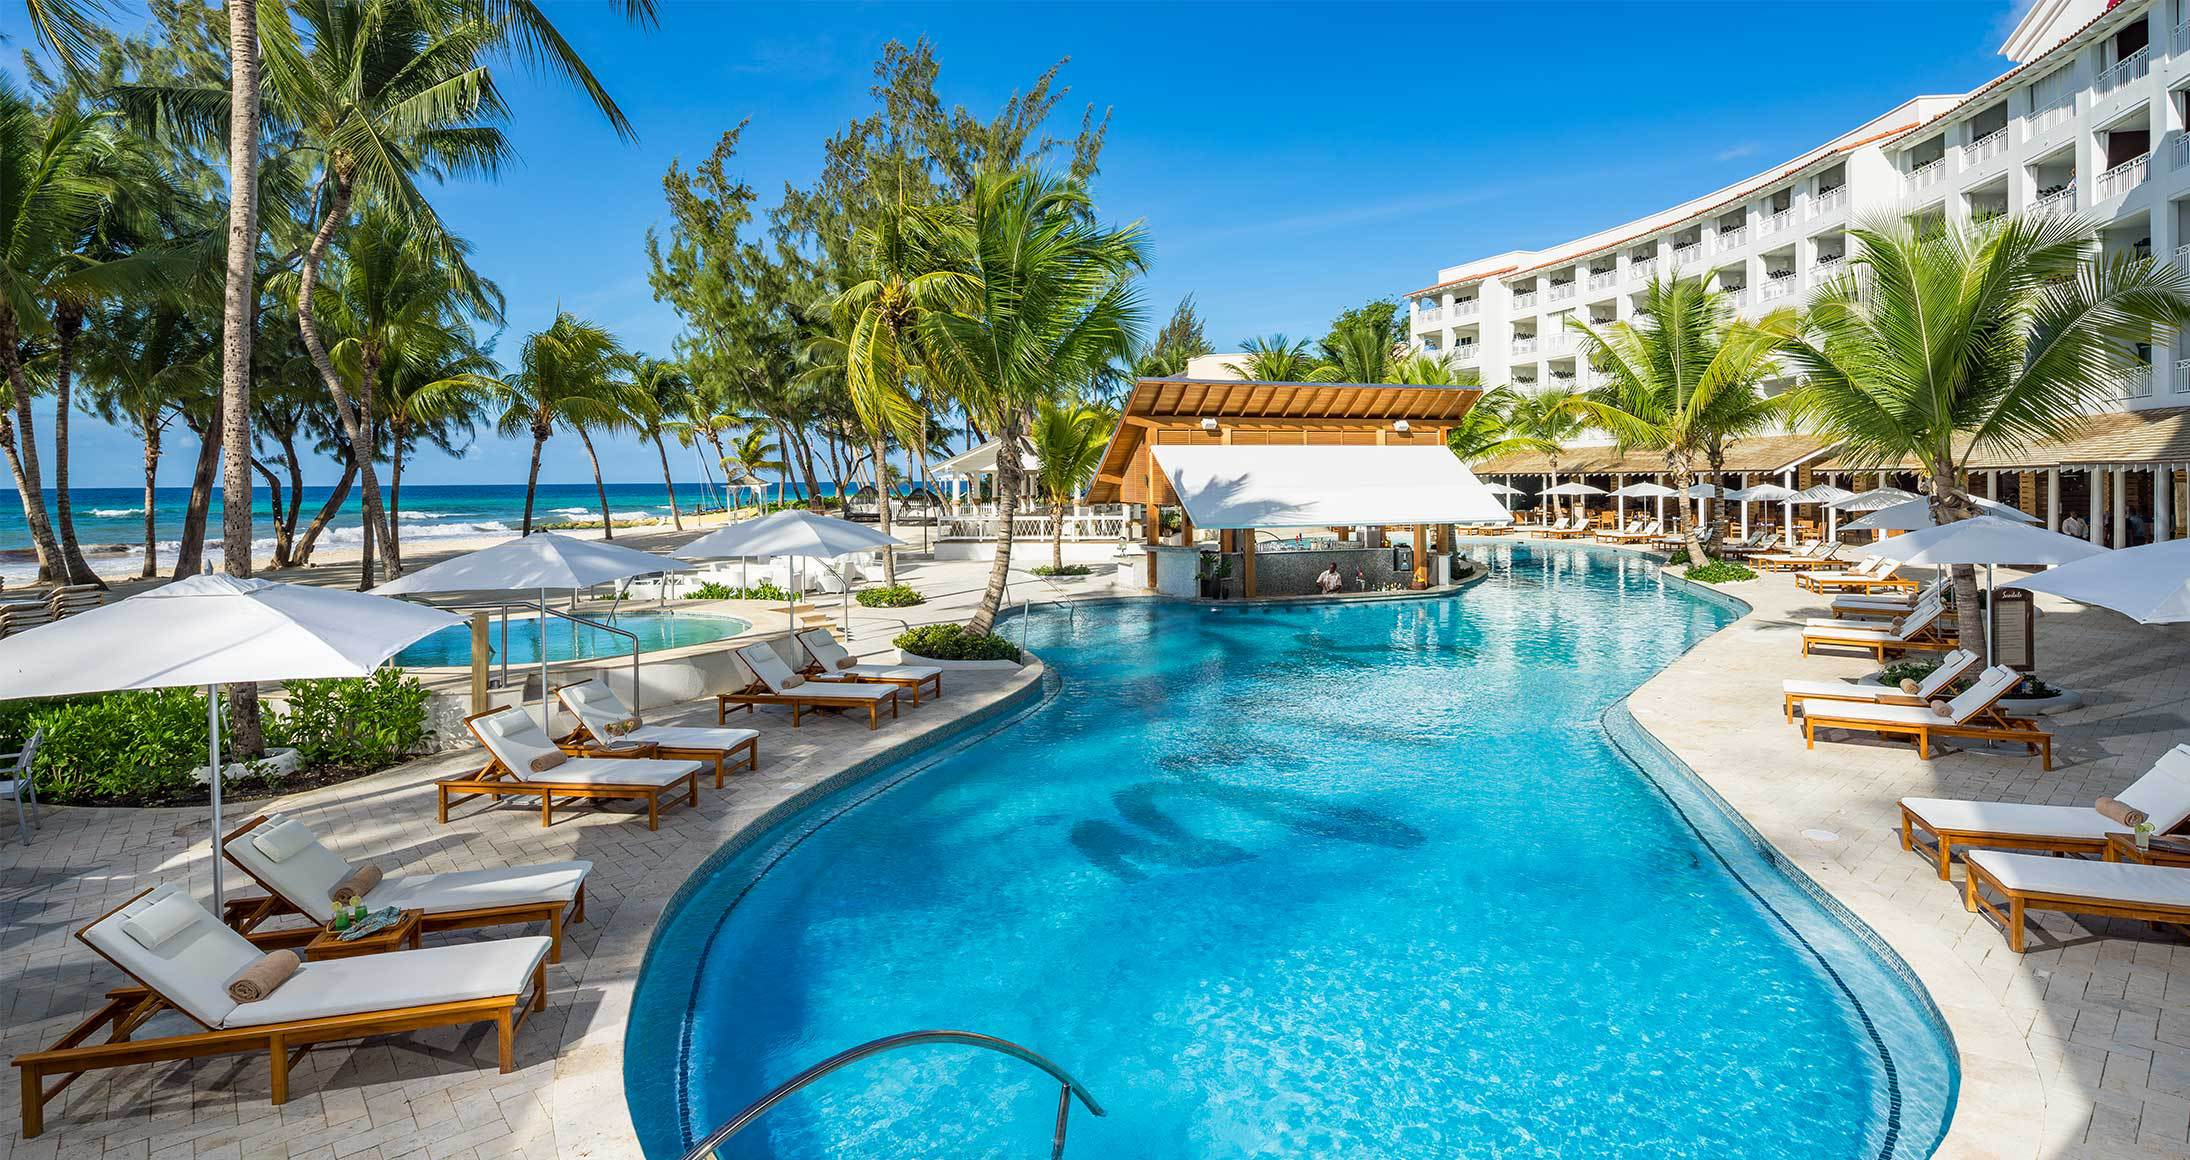 0a76180305aa0e Sandals Barbados - All-Inclusive Luxury Resort in St. Lawrence Gap